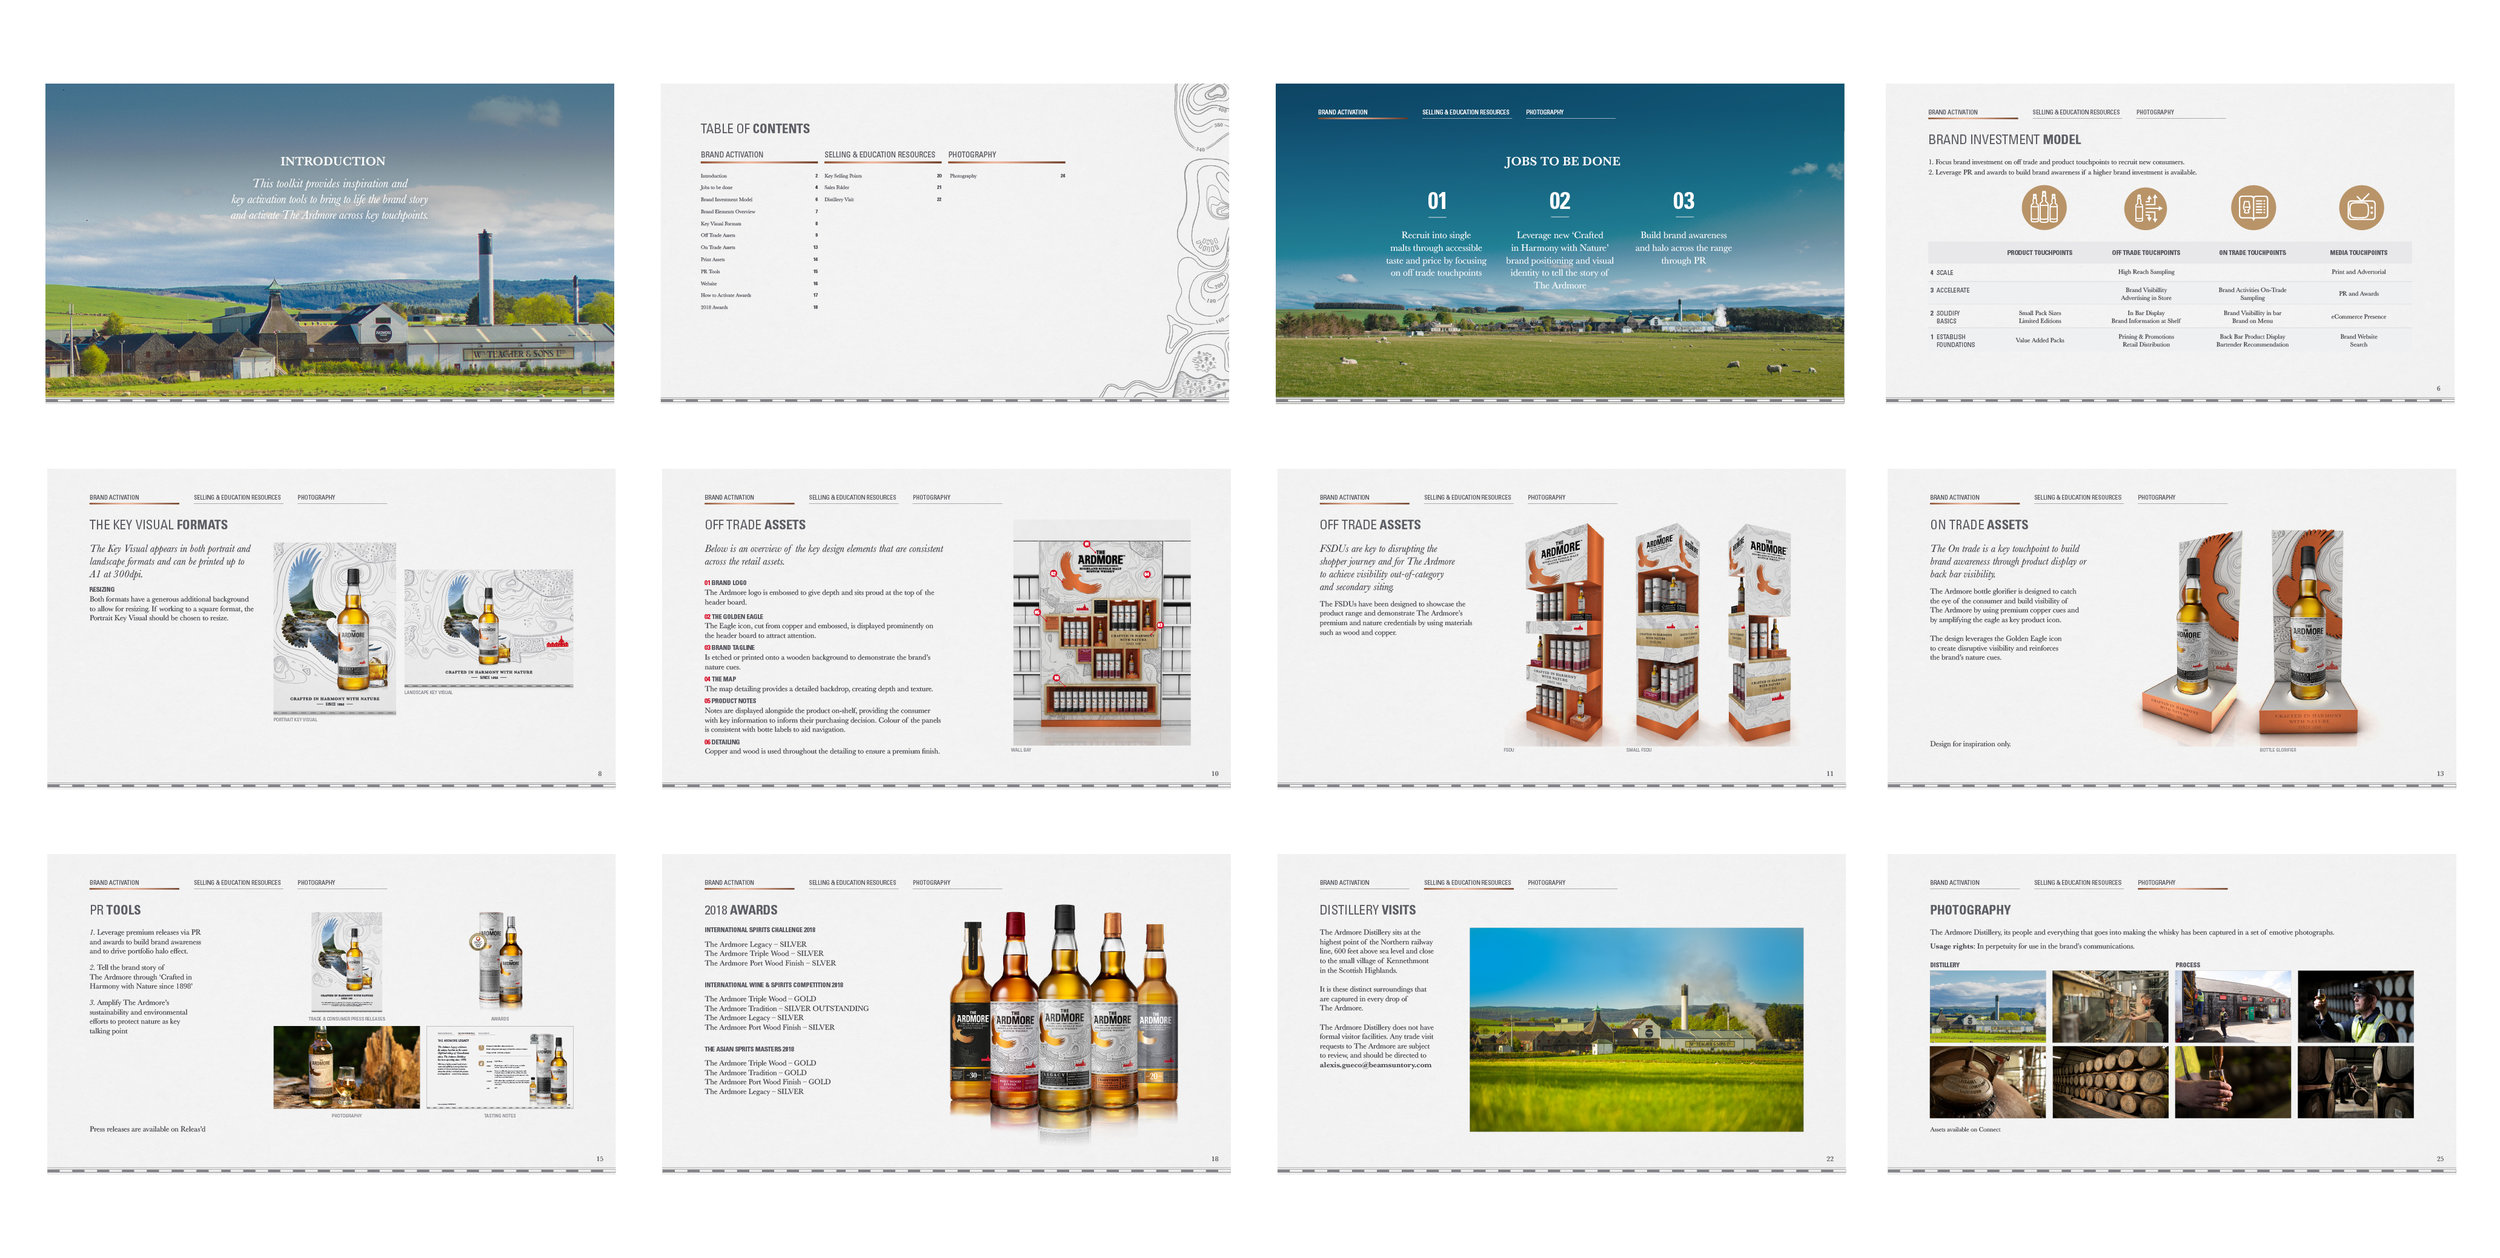 ARDMORE_Toolkit Pages.jpg